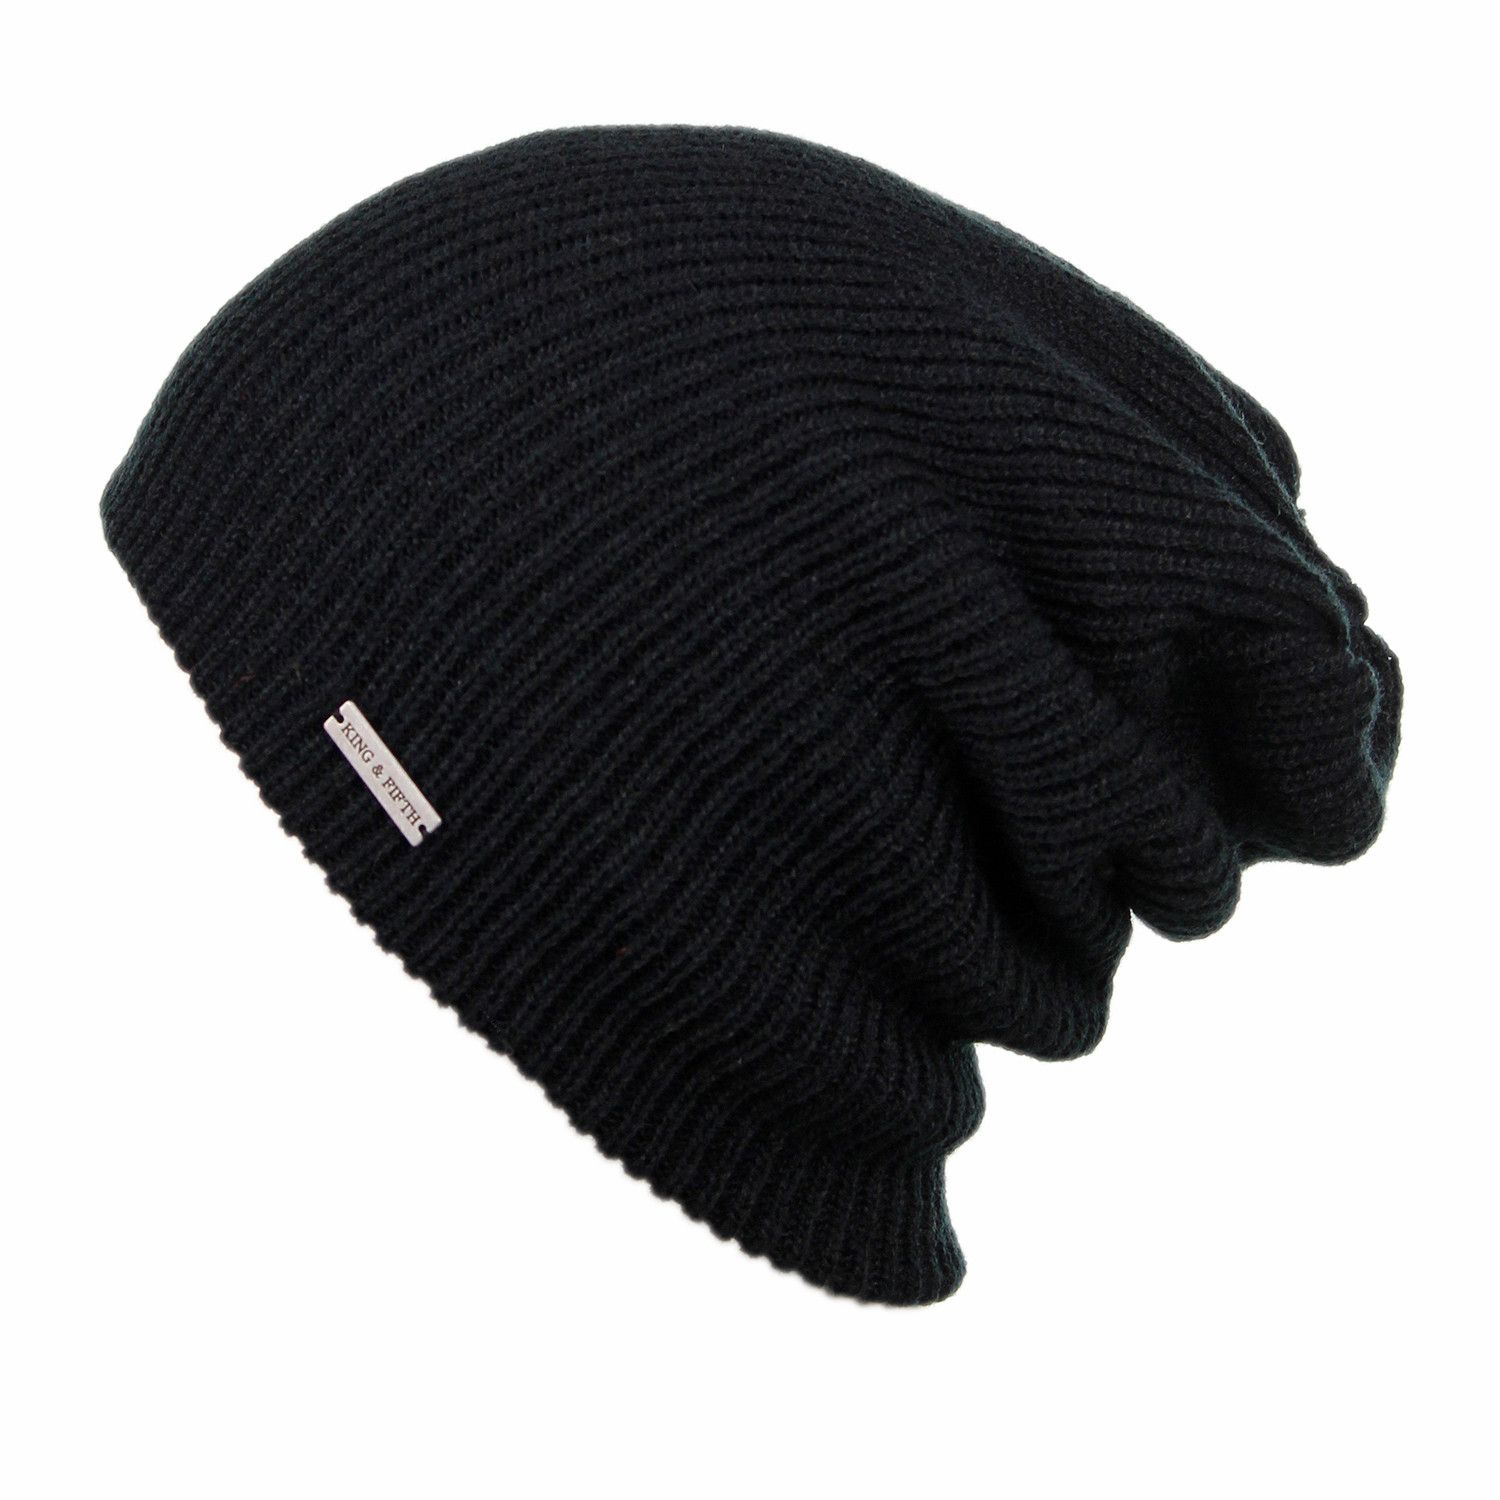 7300f441533 Mens Slouchy Beanie - The Forte